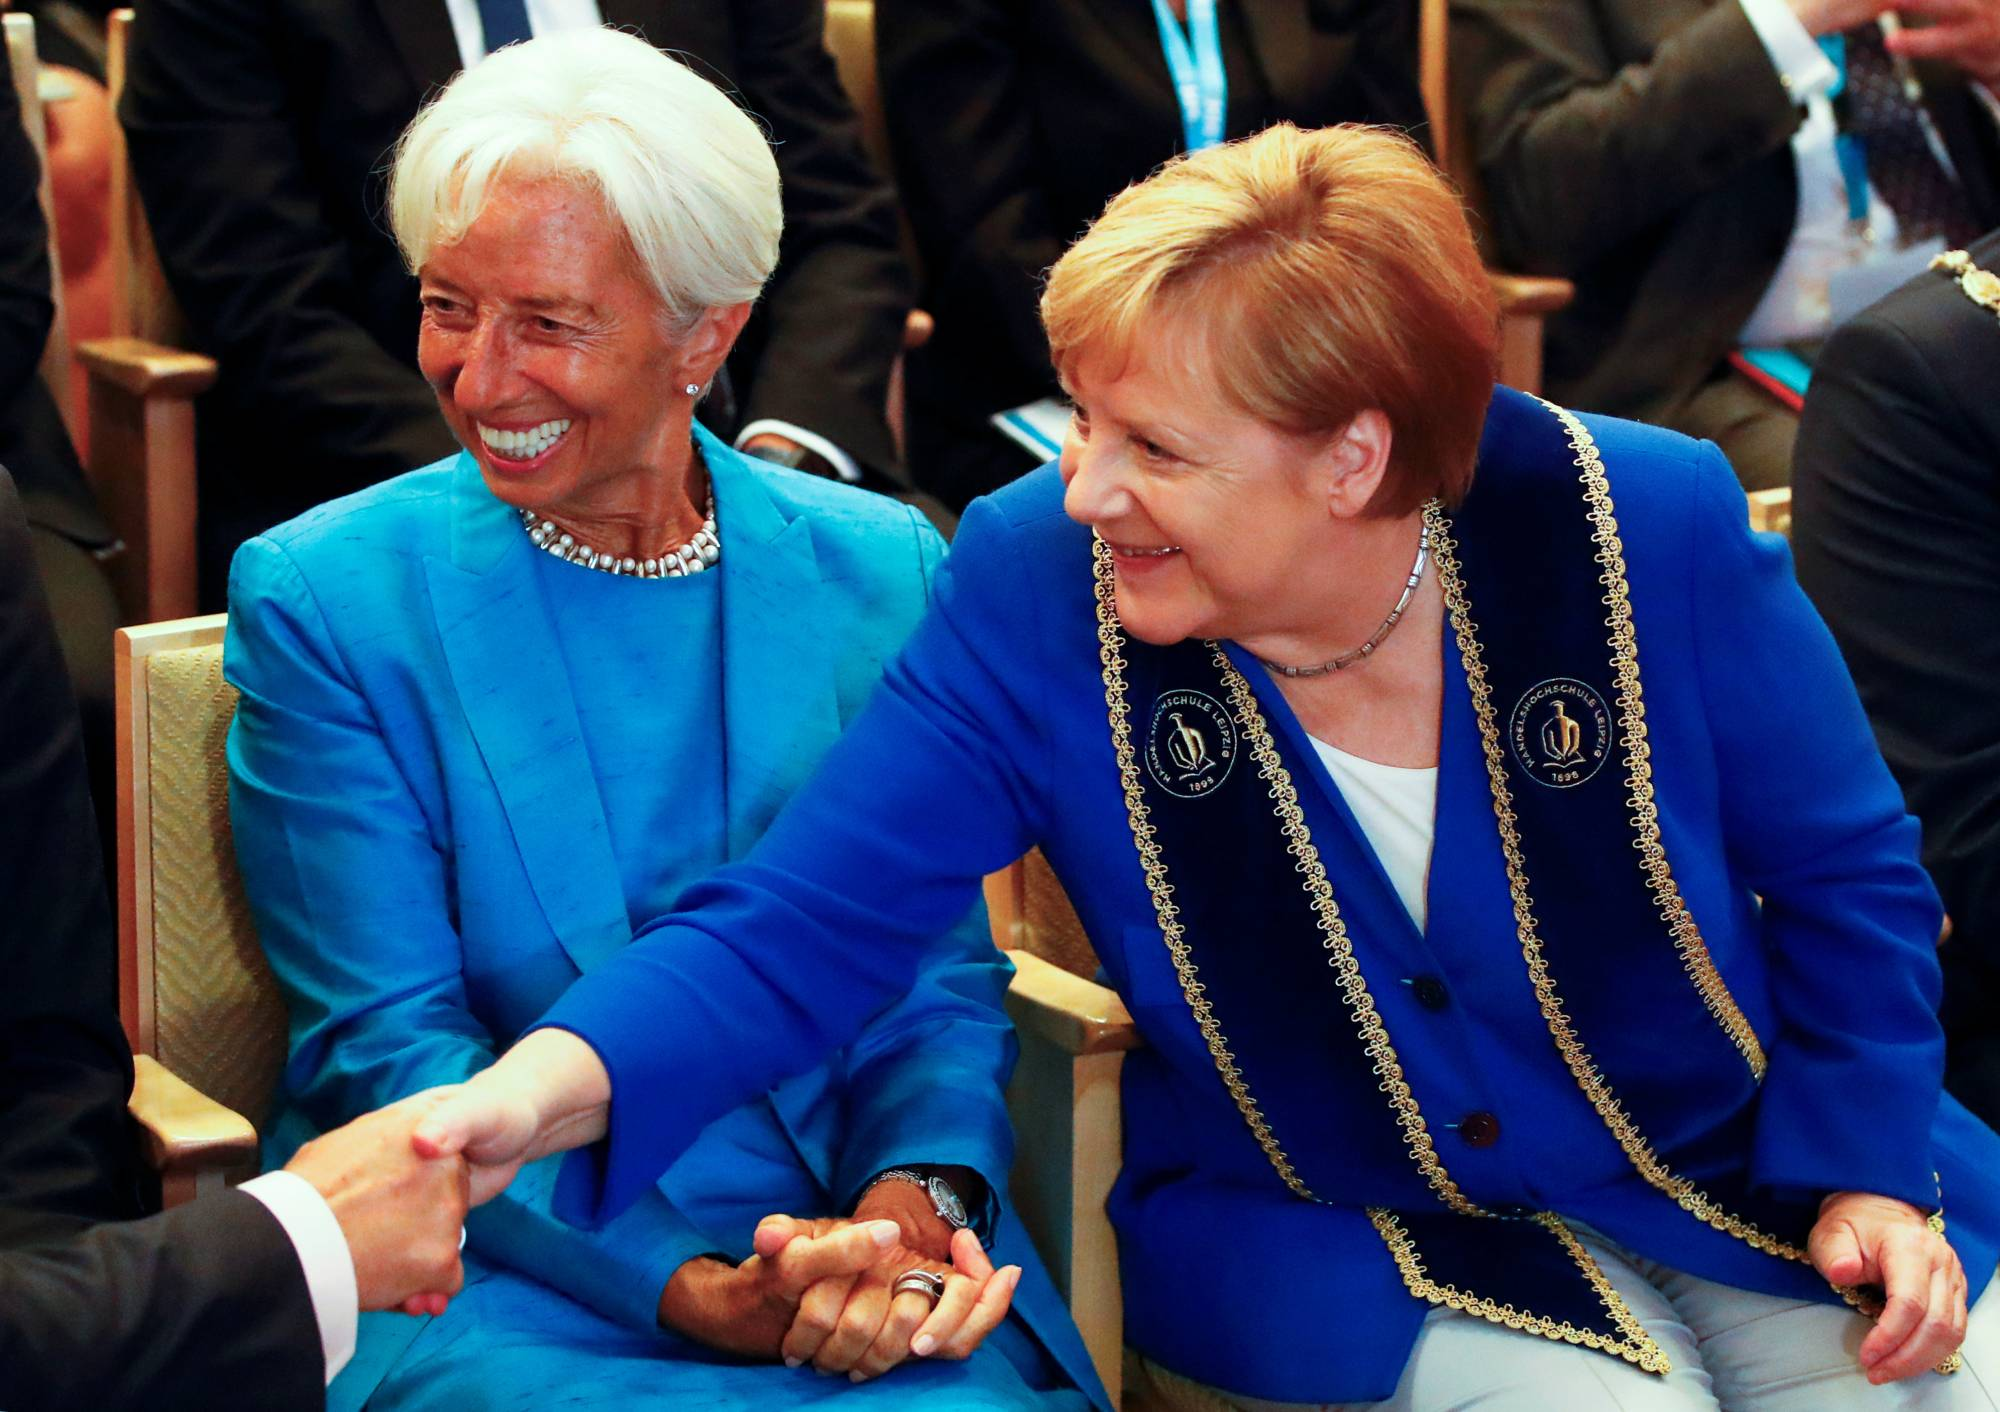 Christine Lagarde, then-head of the International Monetary Fund, and German Chancellor Angela Merkel attend a ceremony in Leipzig, Germany, in August 2019. | REUTERS